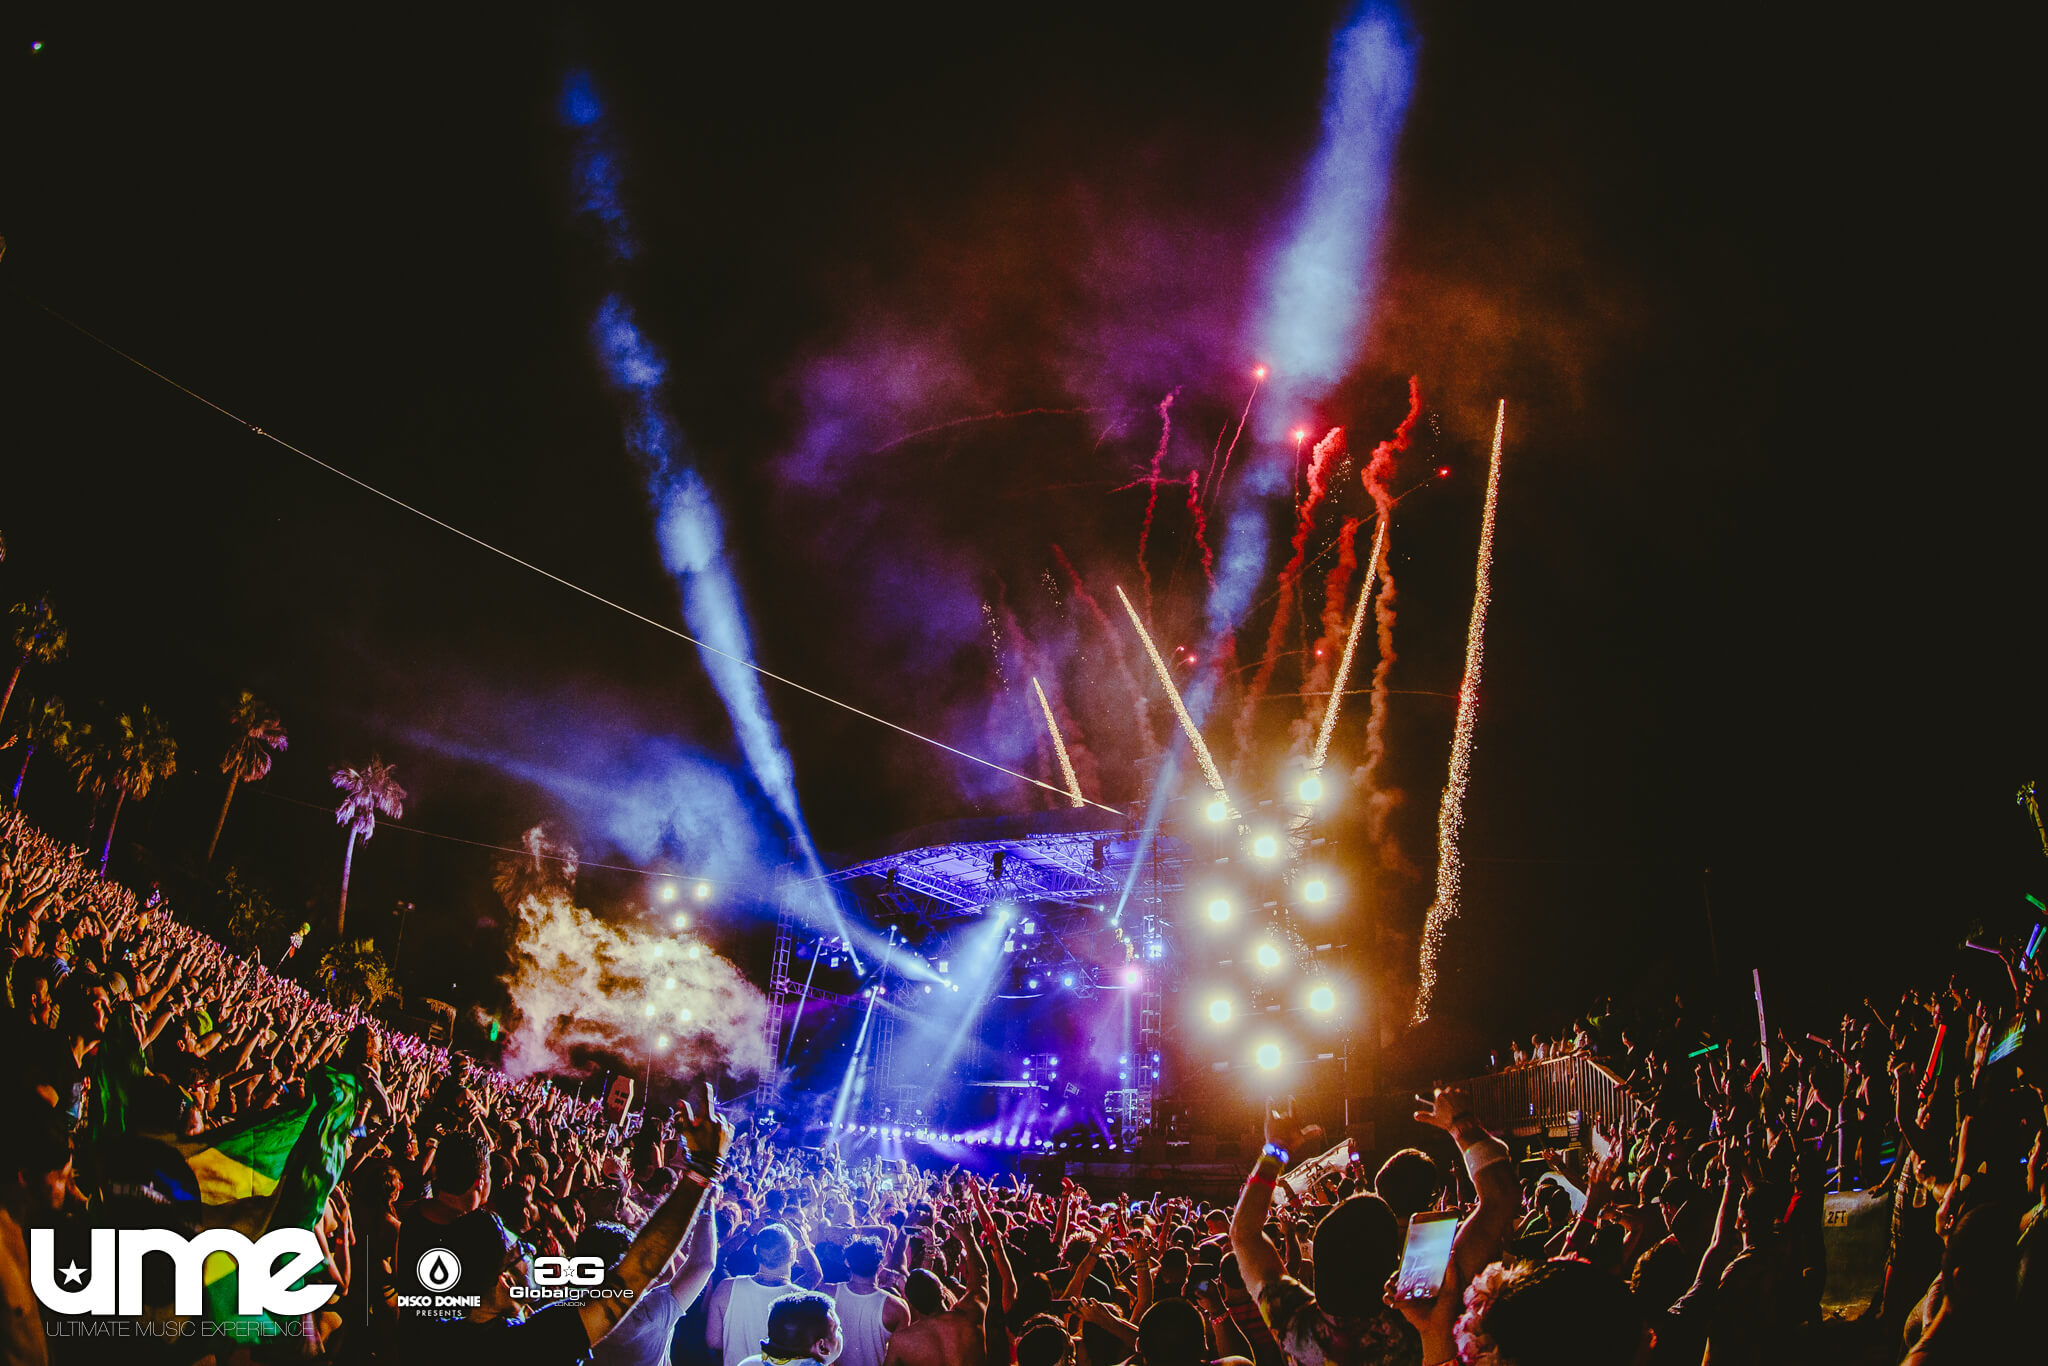 fireworks finale at ume 2016